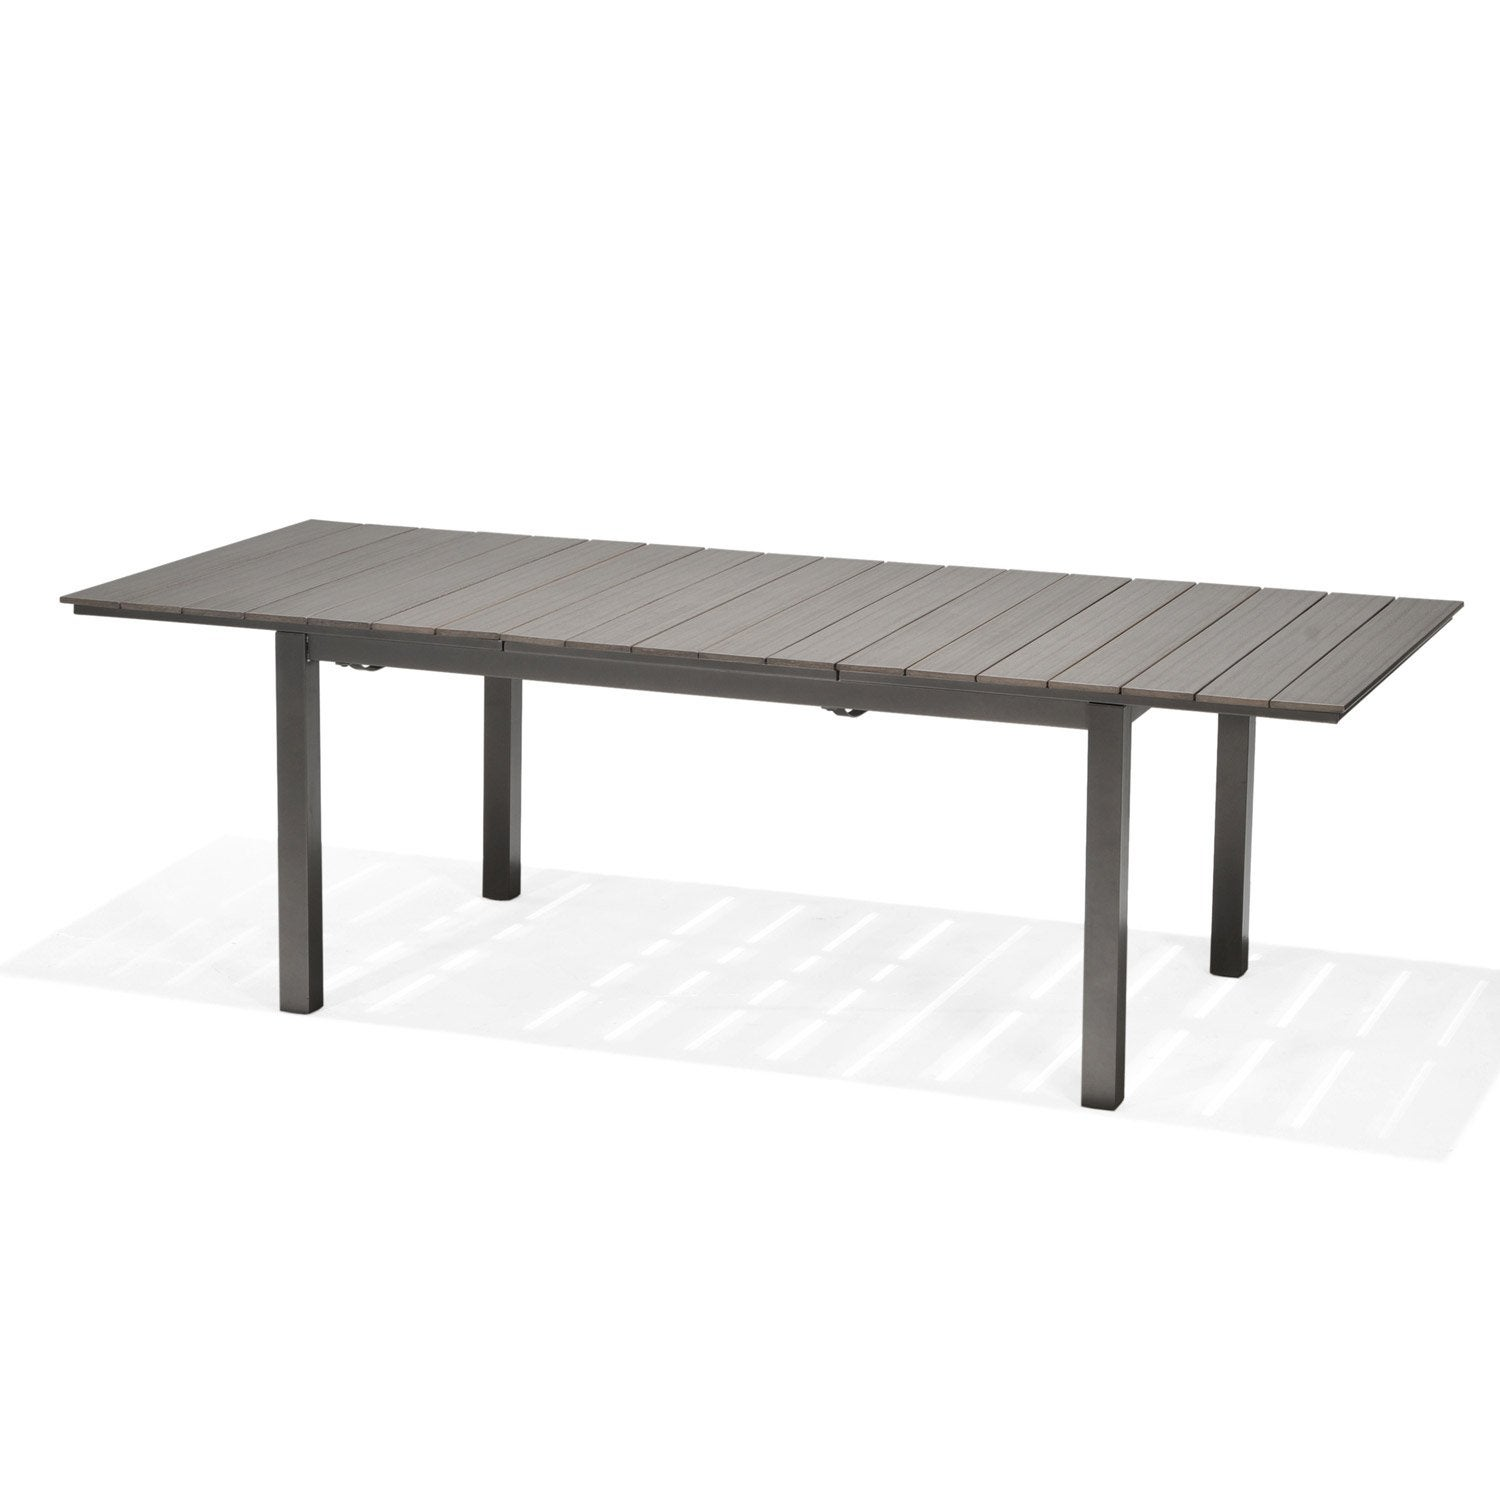 table de jardin salerno rectangulaire gris 4 6 personnes leroy merlin. Black Bedroom Furniture Sets. Home Design Ideas